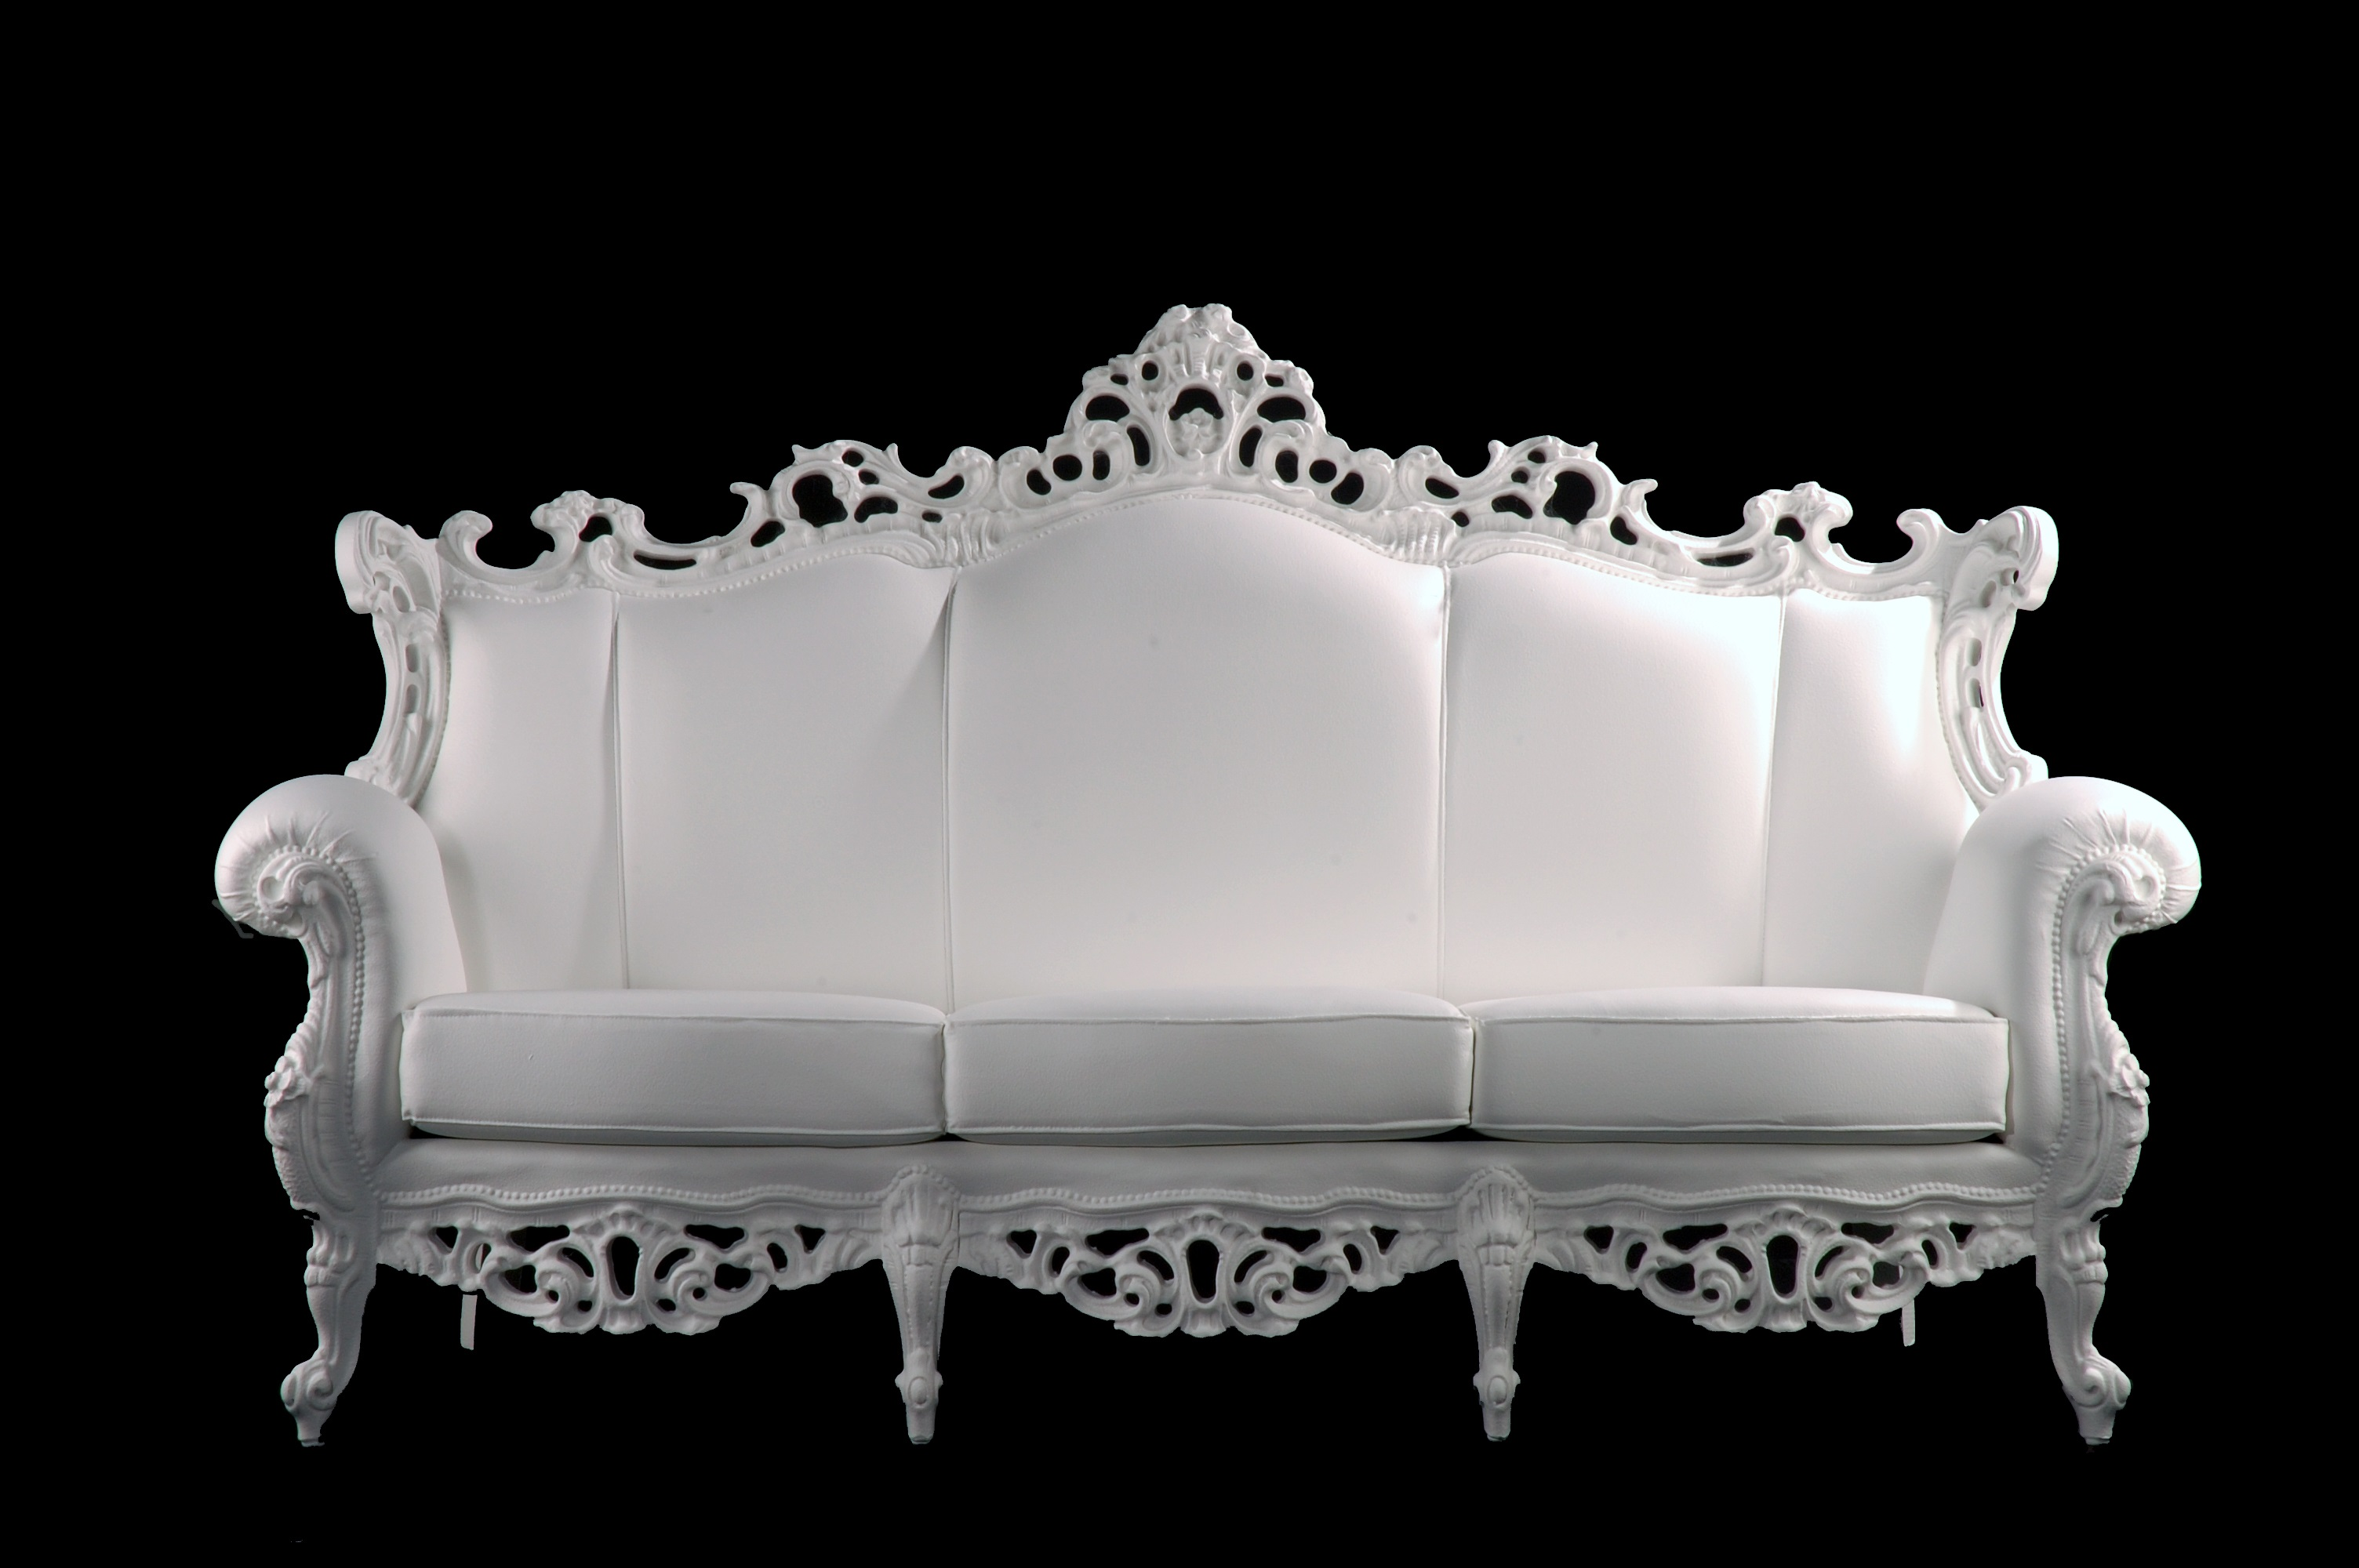 Royal Chair Rental Catertainment